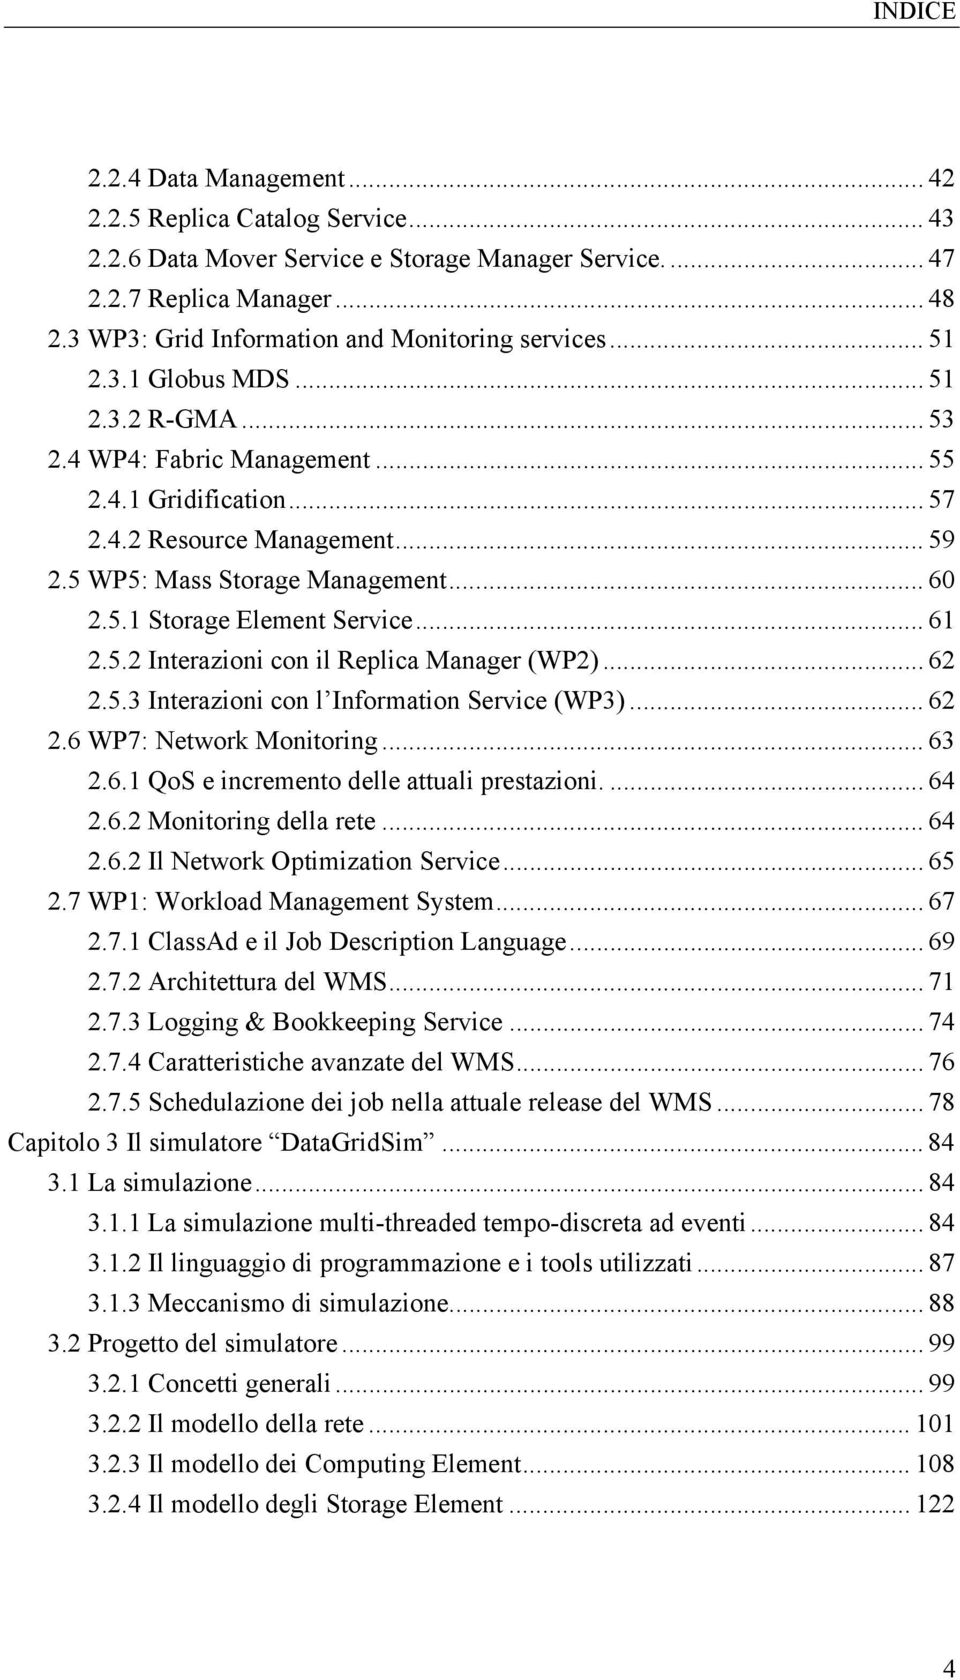 5 WP5: Mass Storage Management... 60 2.5.1 Storage Element Service... 61 2.5.2 Interazioni con il Replica Manager (WP2)... 62 2.5.3 Interazioni con l Information Service (WP3)... 62 2.6 WP7: Network Monitoring.